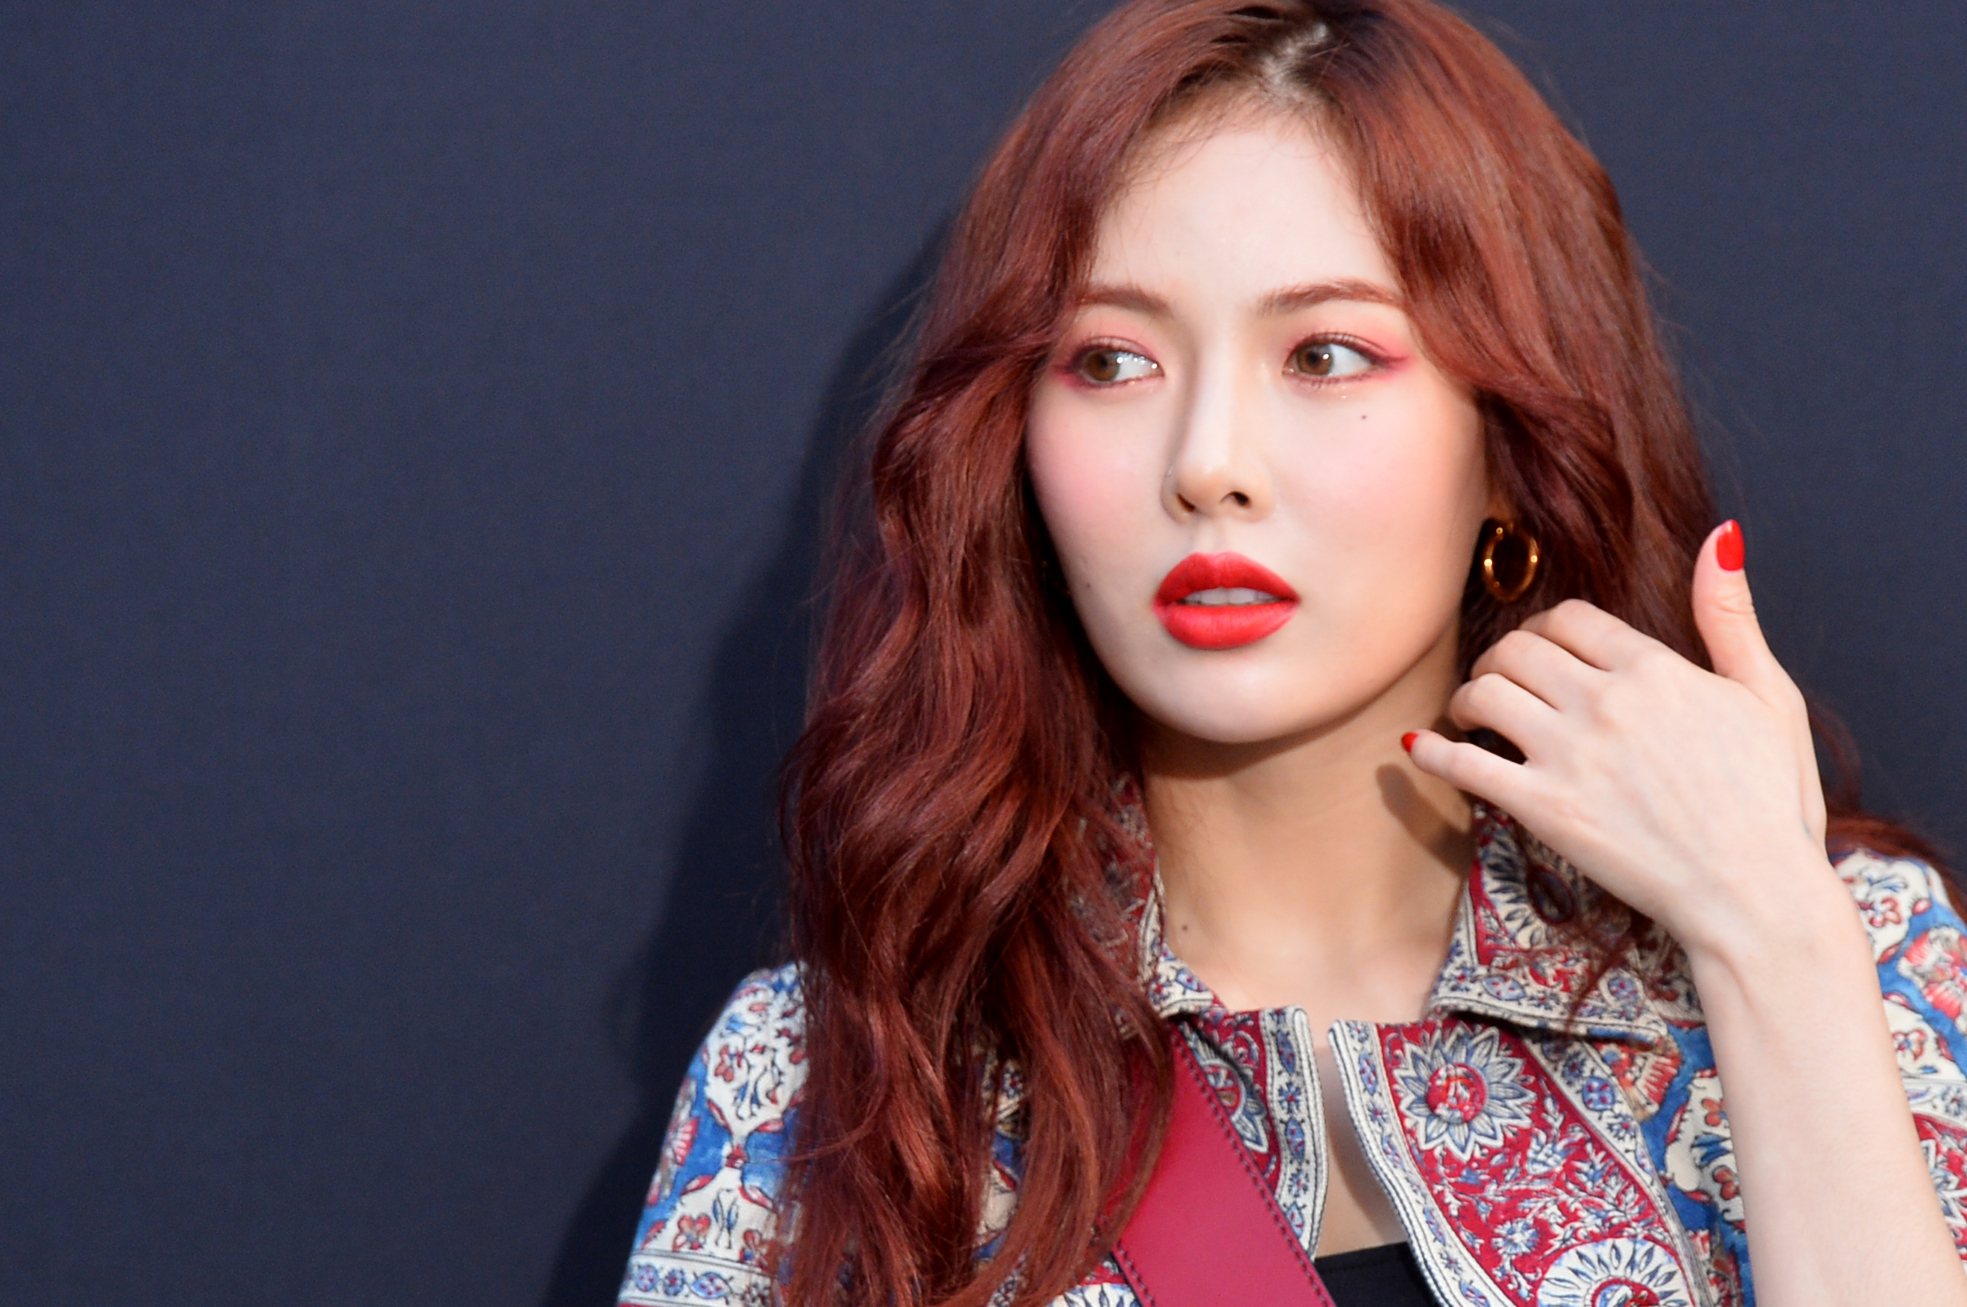 4 Minute Name Ji Hyun rumored to be dating a DJ